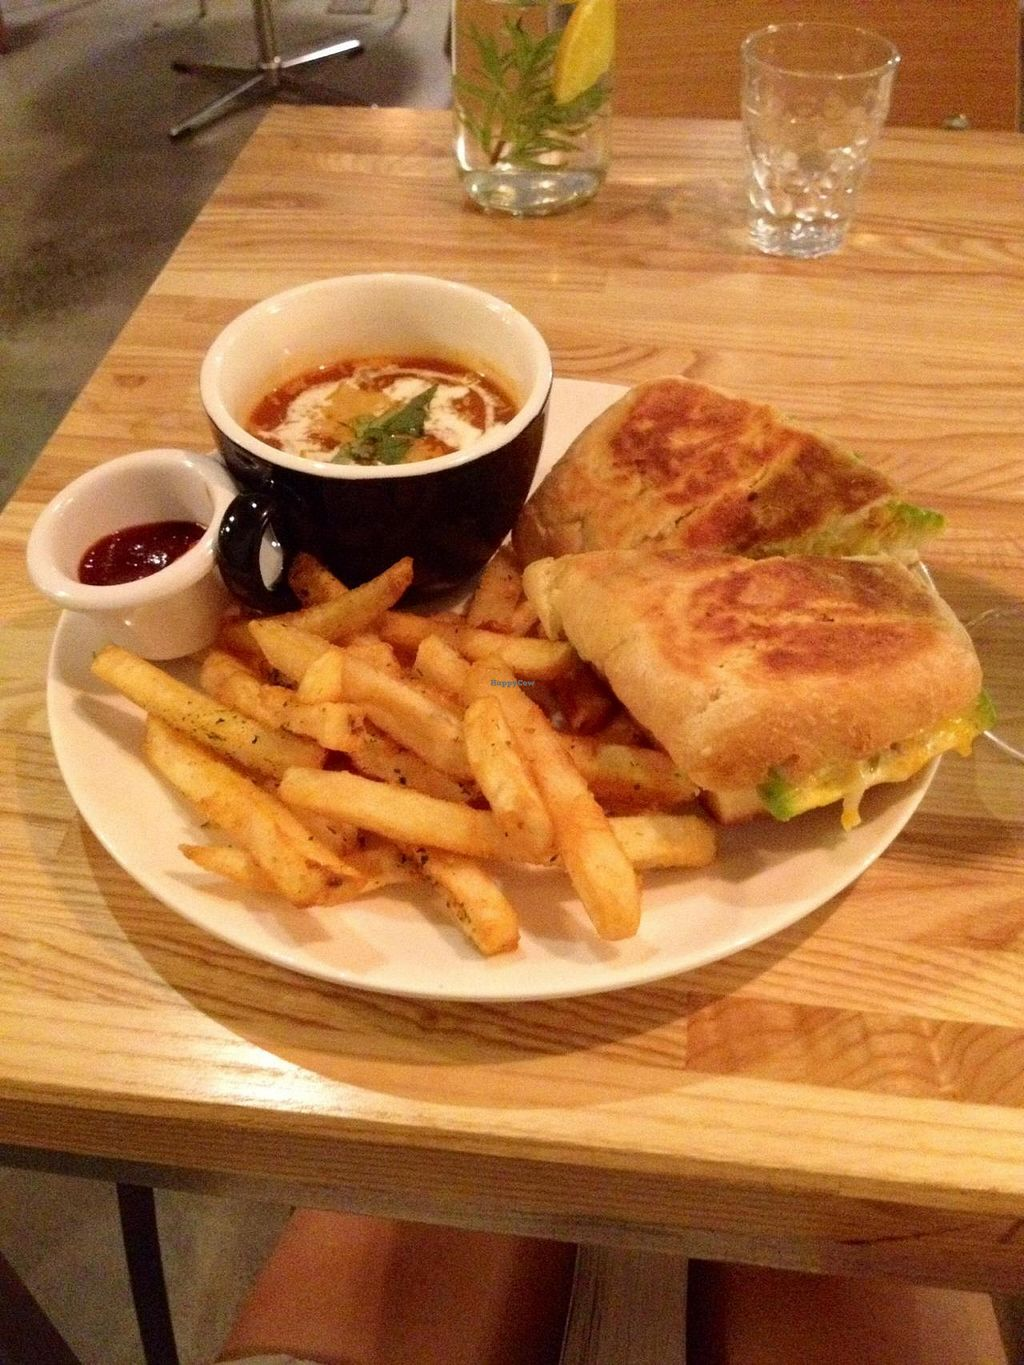 """Photo of Herban Kitchen and Bar  by <a href=""""/members/profile/Avesloa"""">Avesloa</a> <br/>Grilled Cheese: Avocado Lemon Compote <br/> July 7, 2014  - <a href='/contact/abuse/image/45569/73406'>Report</a>"""